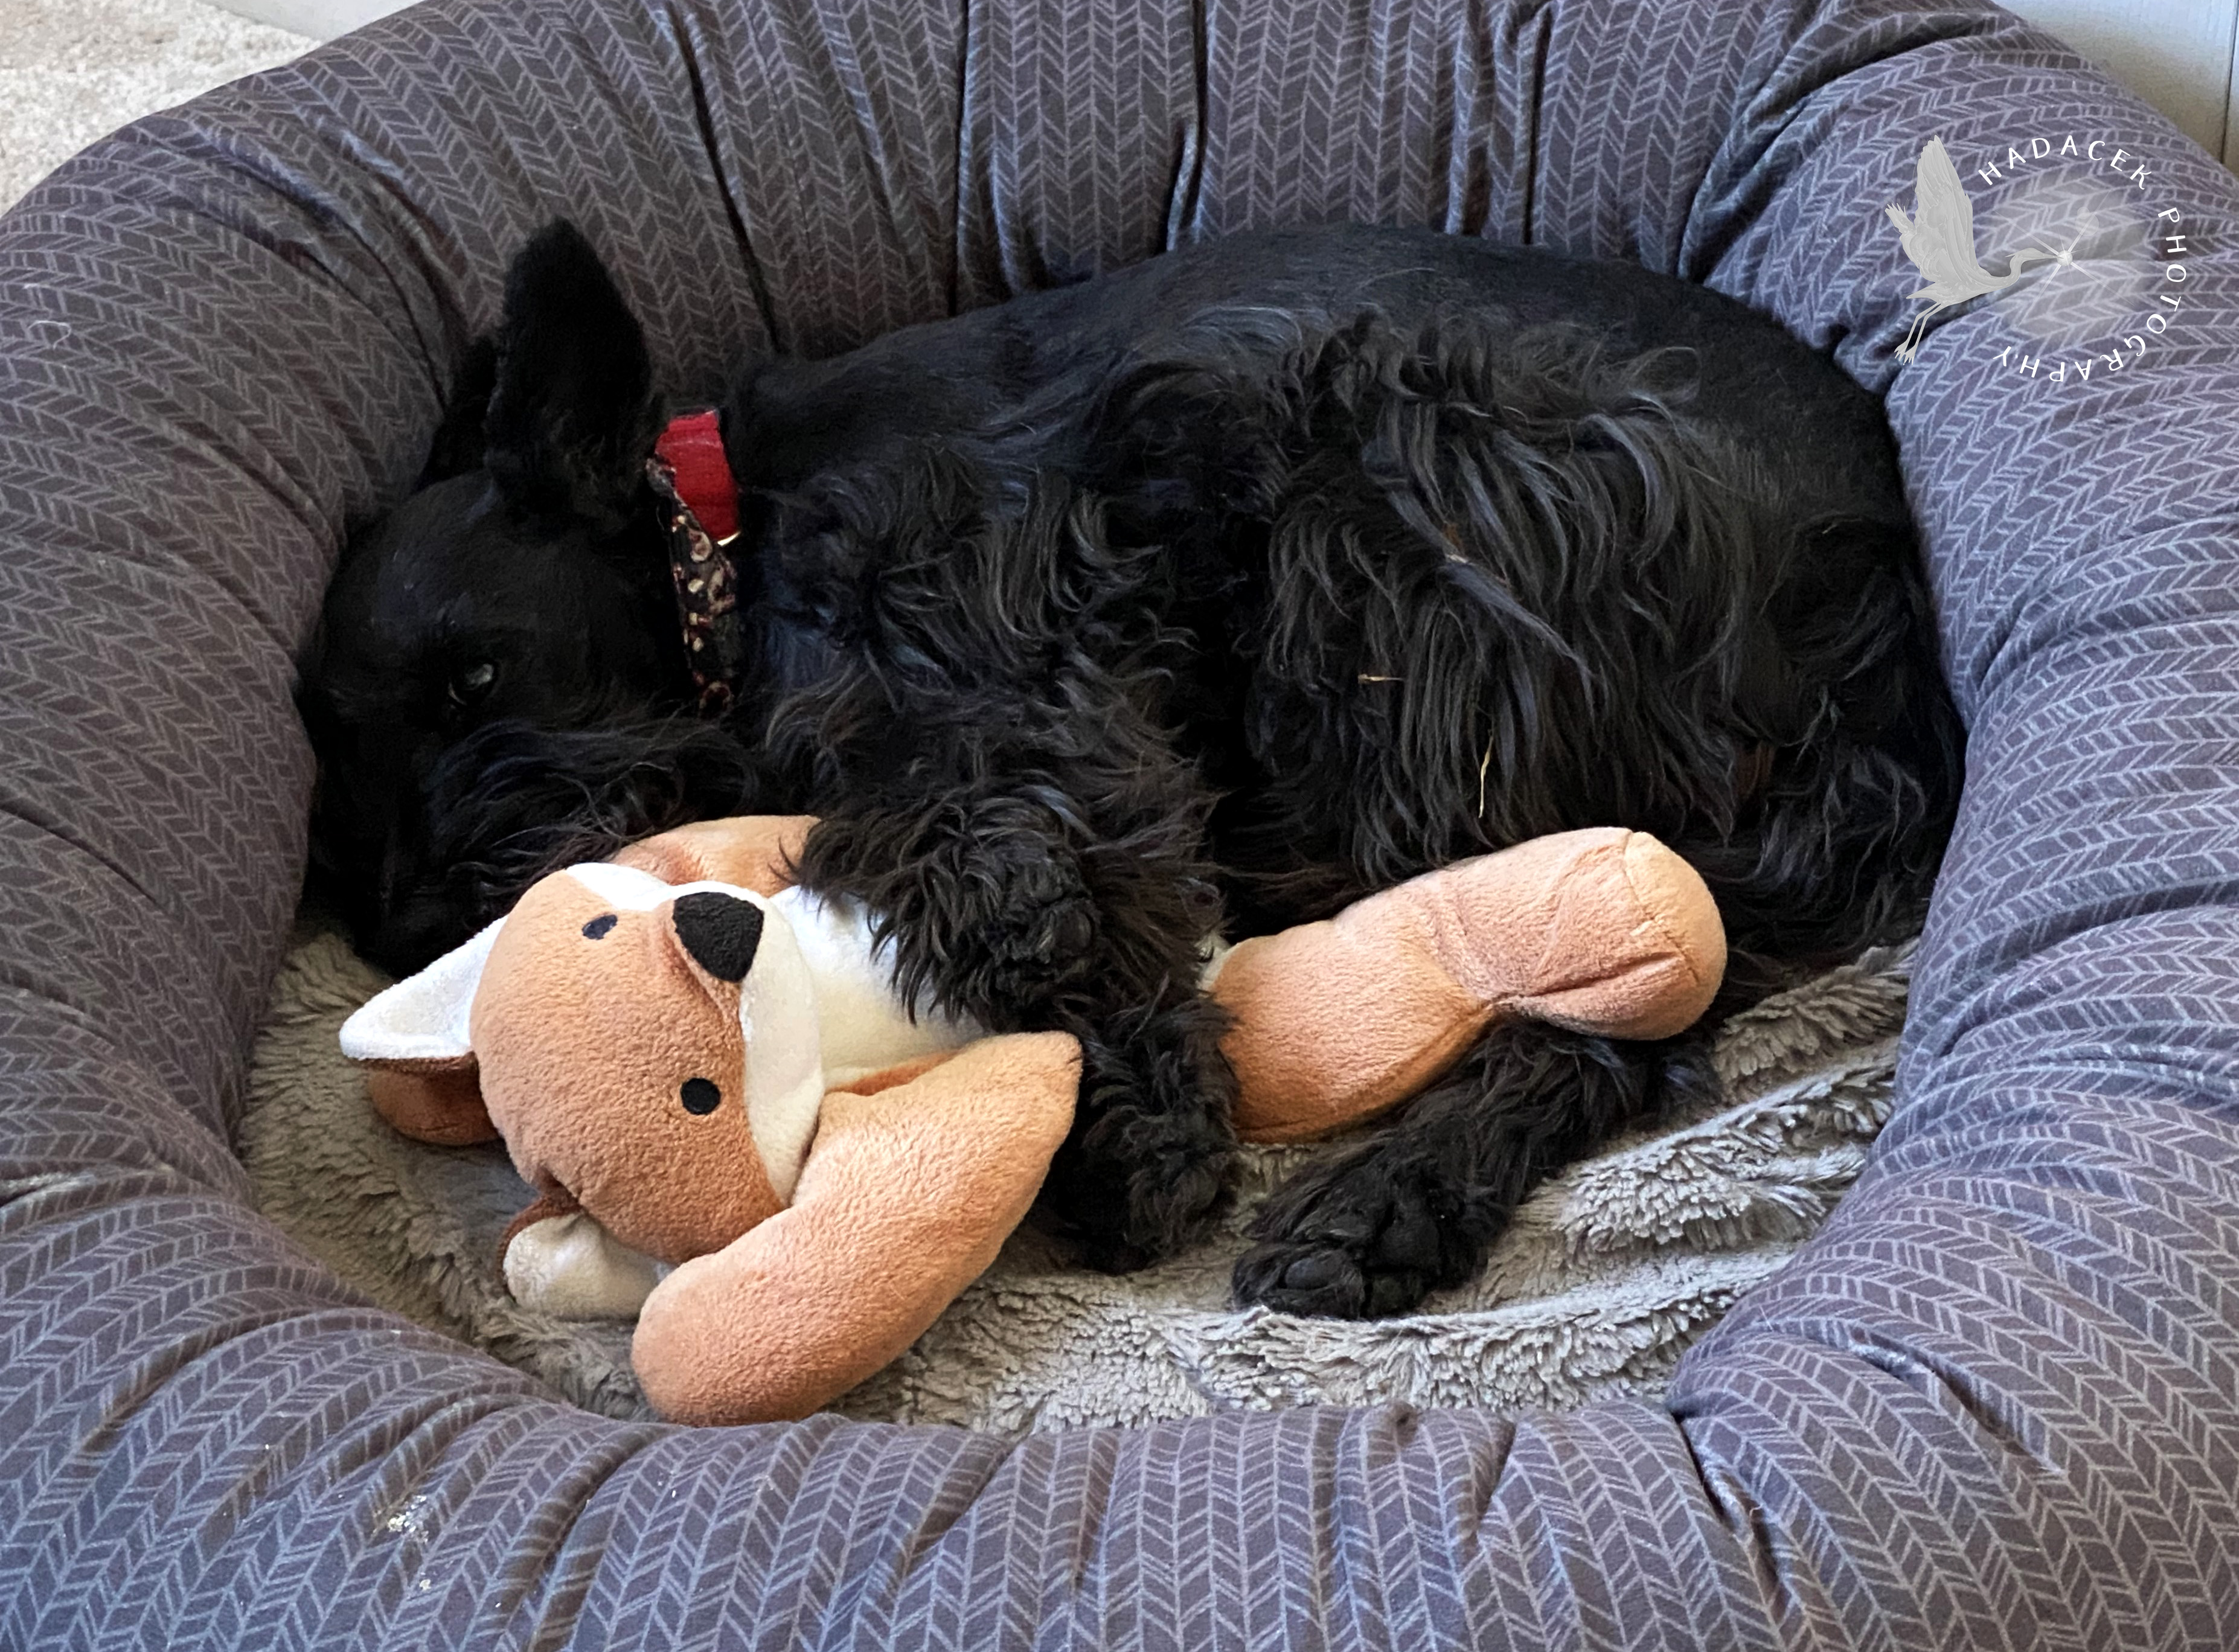 black dog snuggling toy